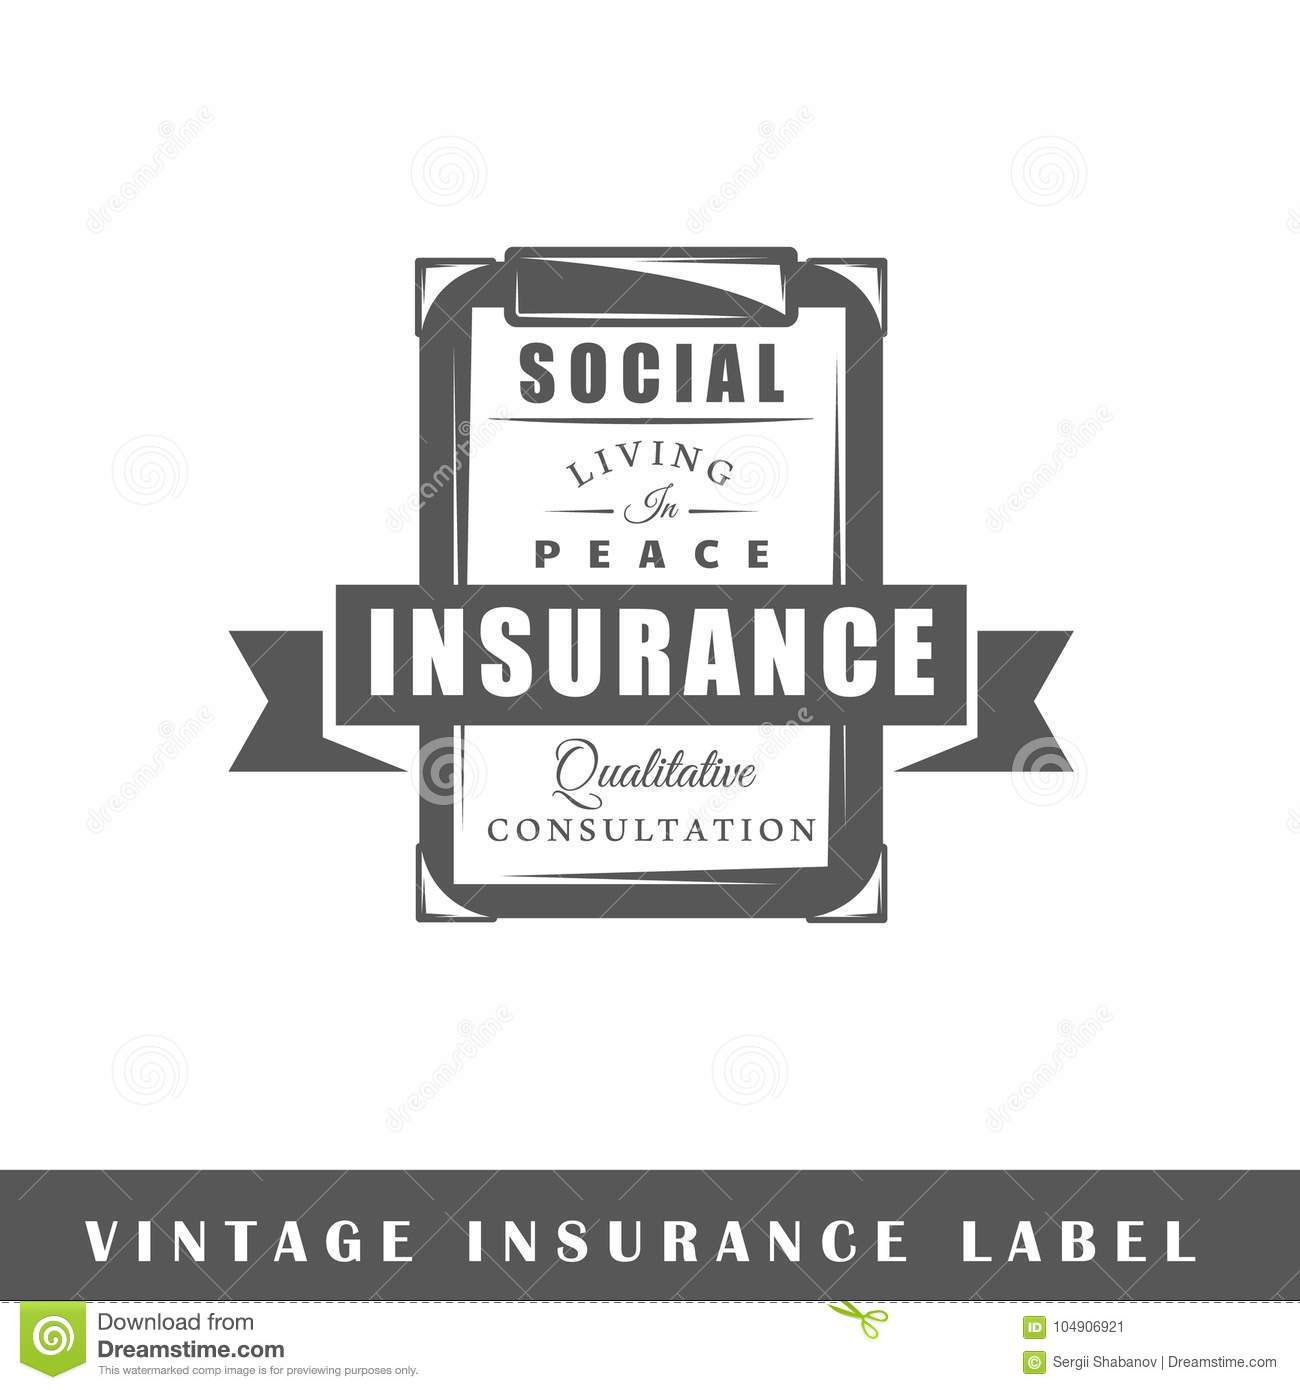 Insurance label template stock vector. Illustration of business ...